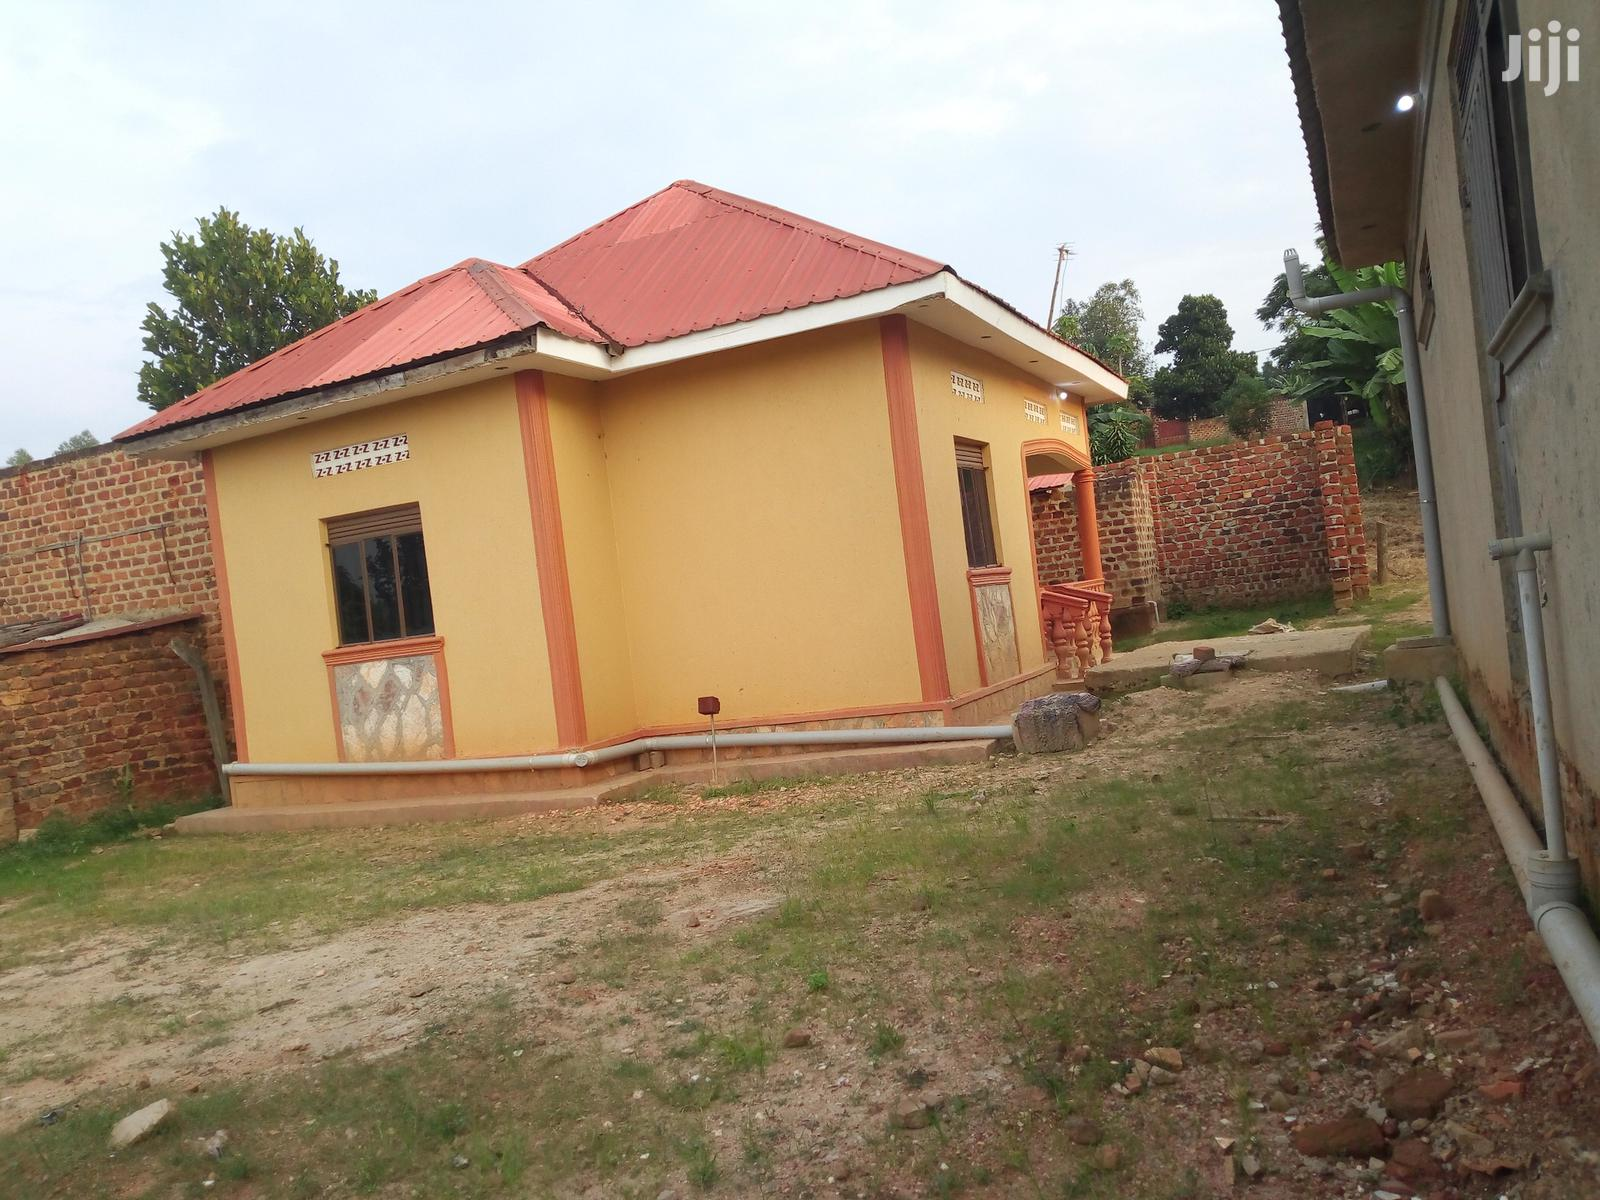 On Sale::2bedrooms,2bathrooms,Sitting,Kicthen On 50ftby100ft | Houses & Apartments For Sale for sale in Kampala, Central Region, Uganda